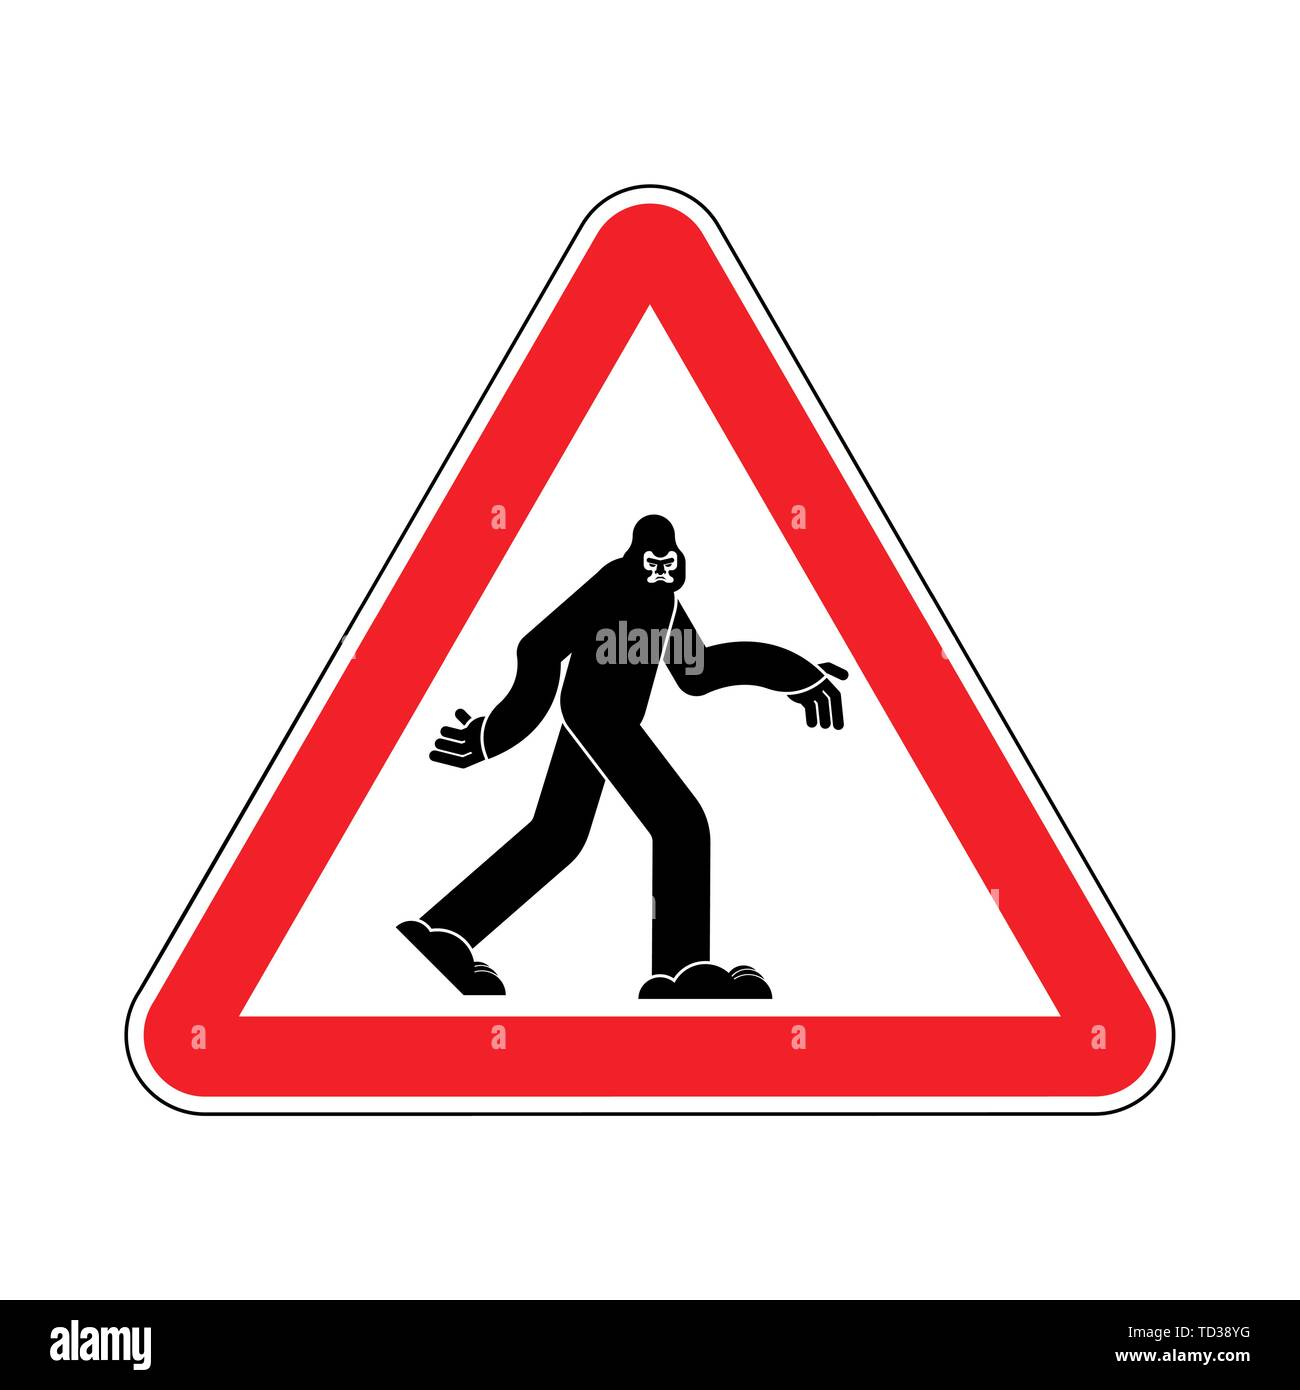 Attention Bigfoot. Caution Yeti. Red triangle road sign - Stock Image